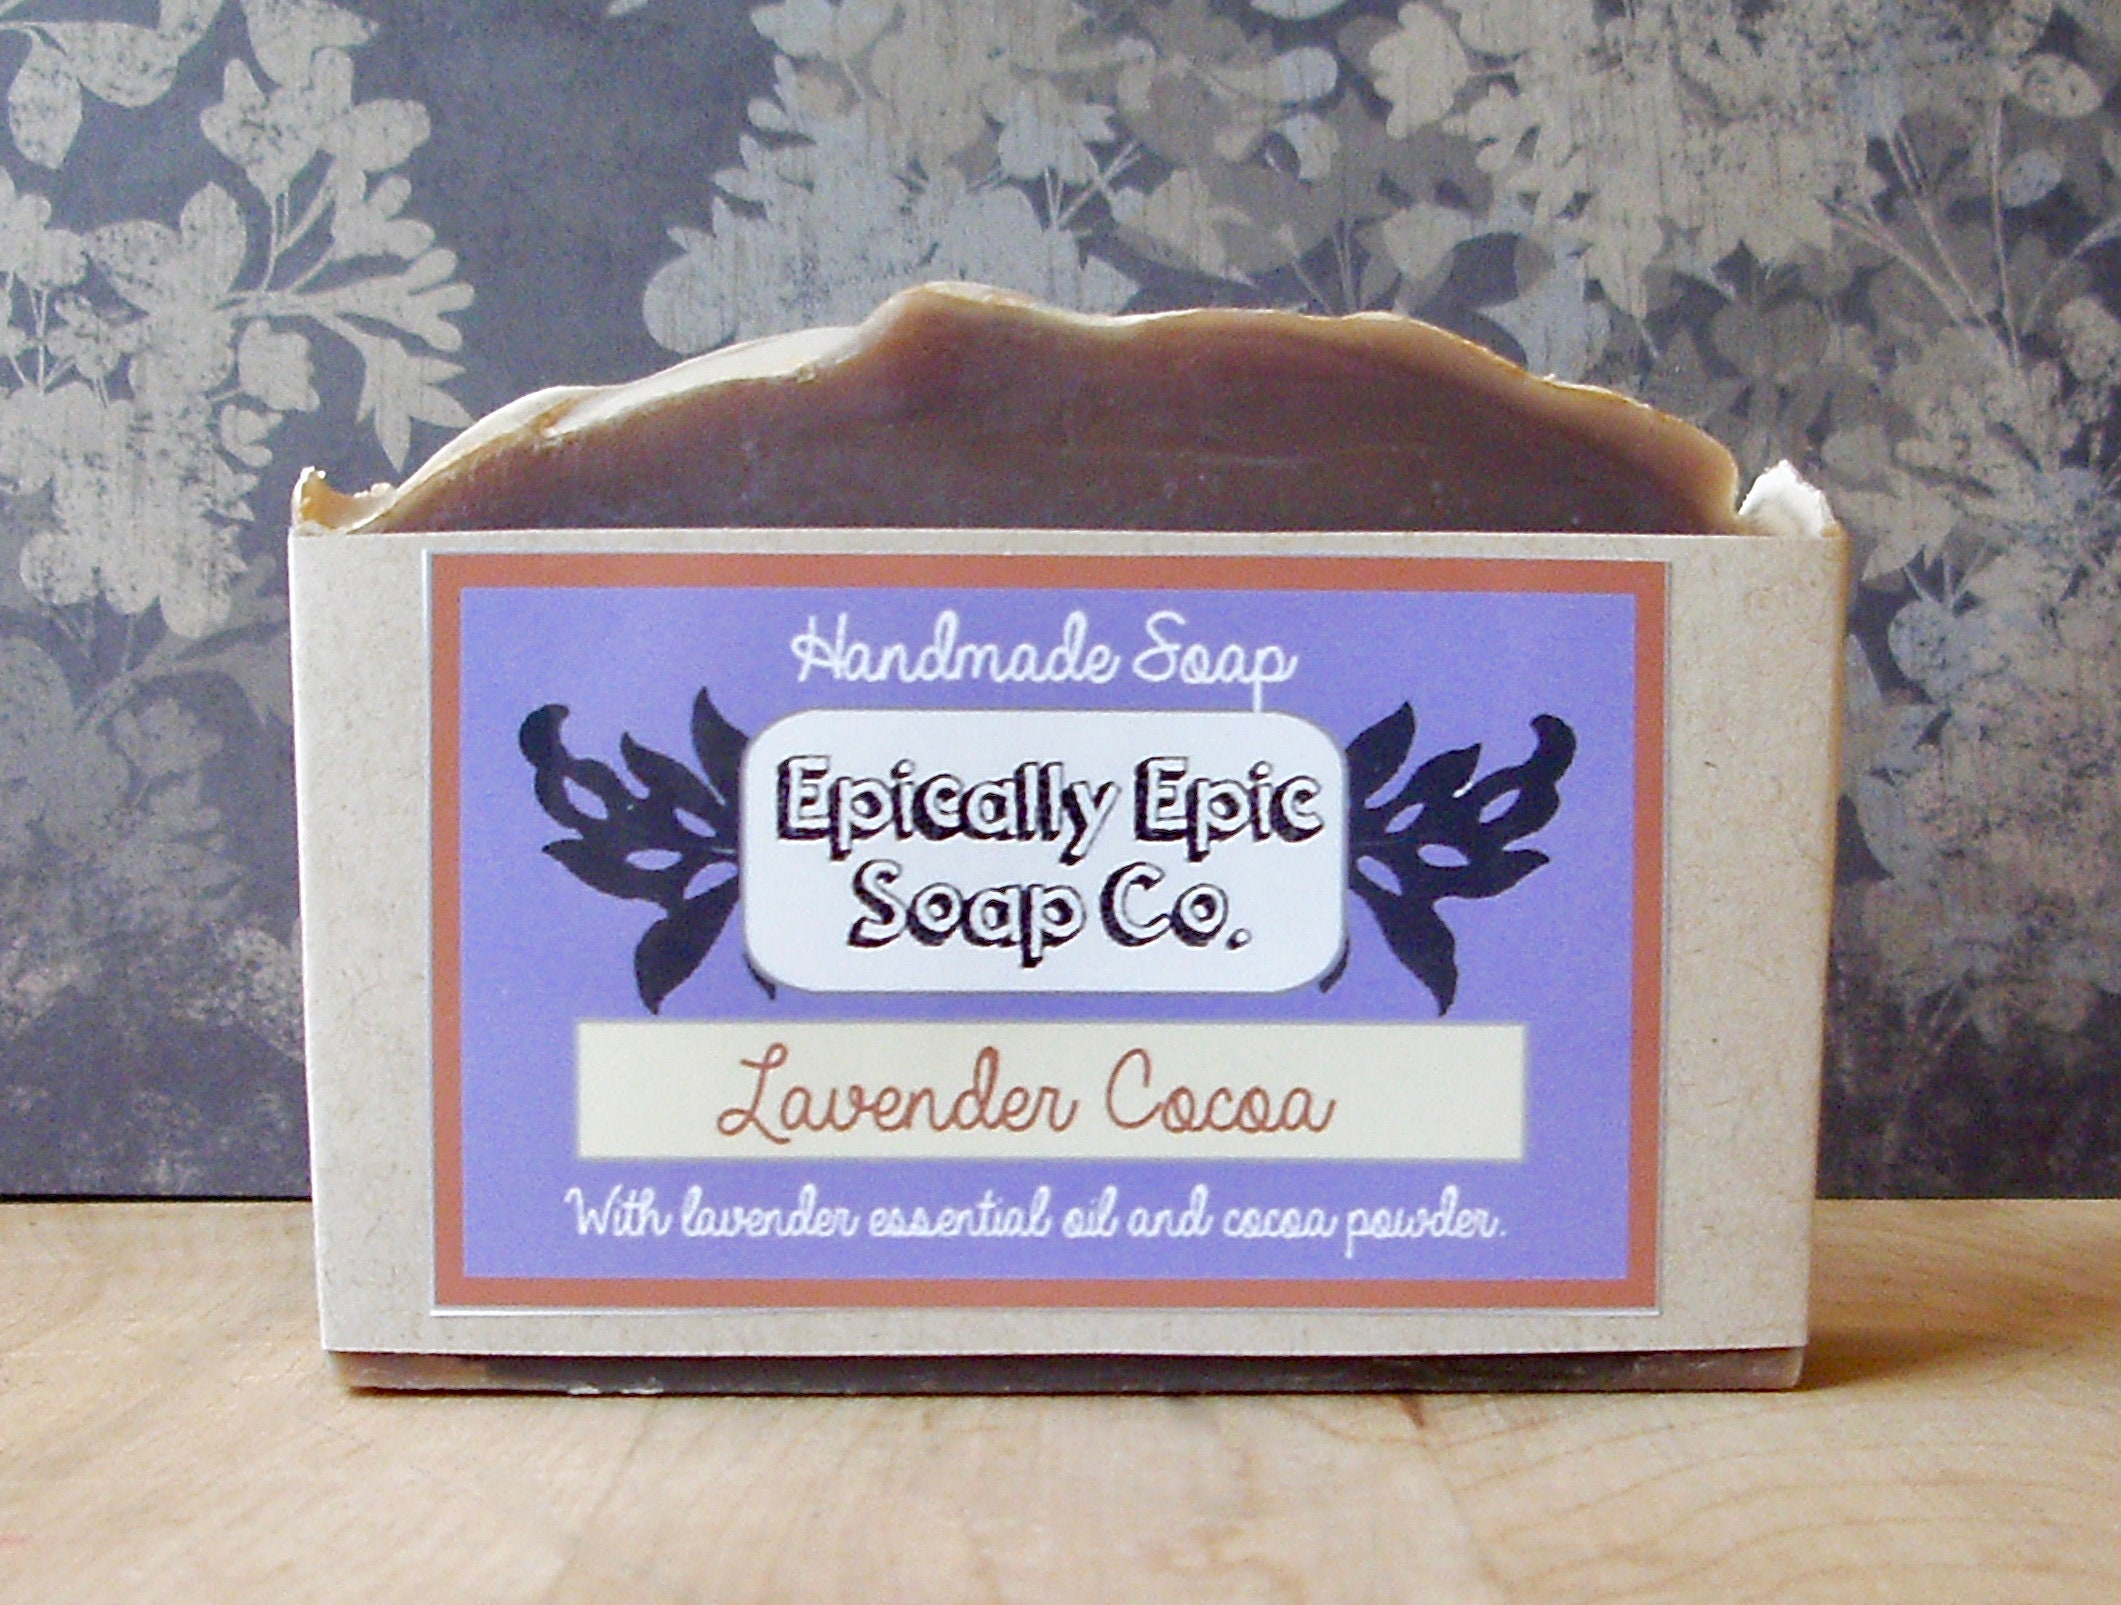 Lavender,Cocoa,Cold,Process,Soap,-,Vegan,Handmade,Bath_And_Beauty,soap,cold_process_soap,handmade_soap,epically_epic_soap,bar_soap,natural_soap,homemade_soap,spring_collection,mint_soap,green_tea_soap,spearmint_soap,peppermint_soap,glycerin_soap,olive oil,organic palm kernel oil,castor oil,sodium hy